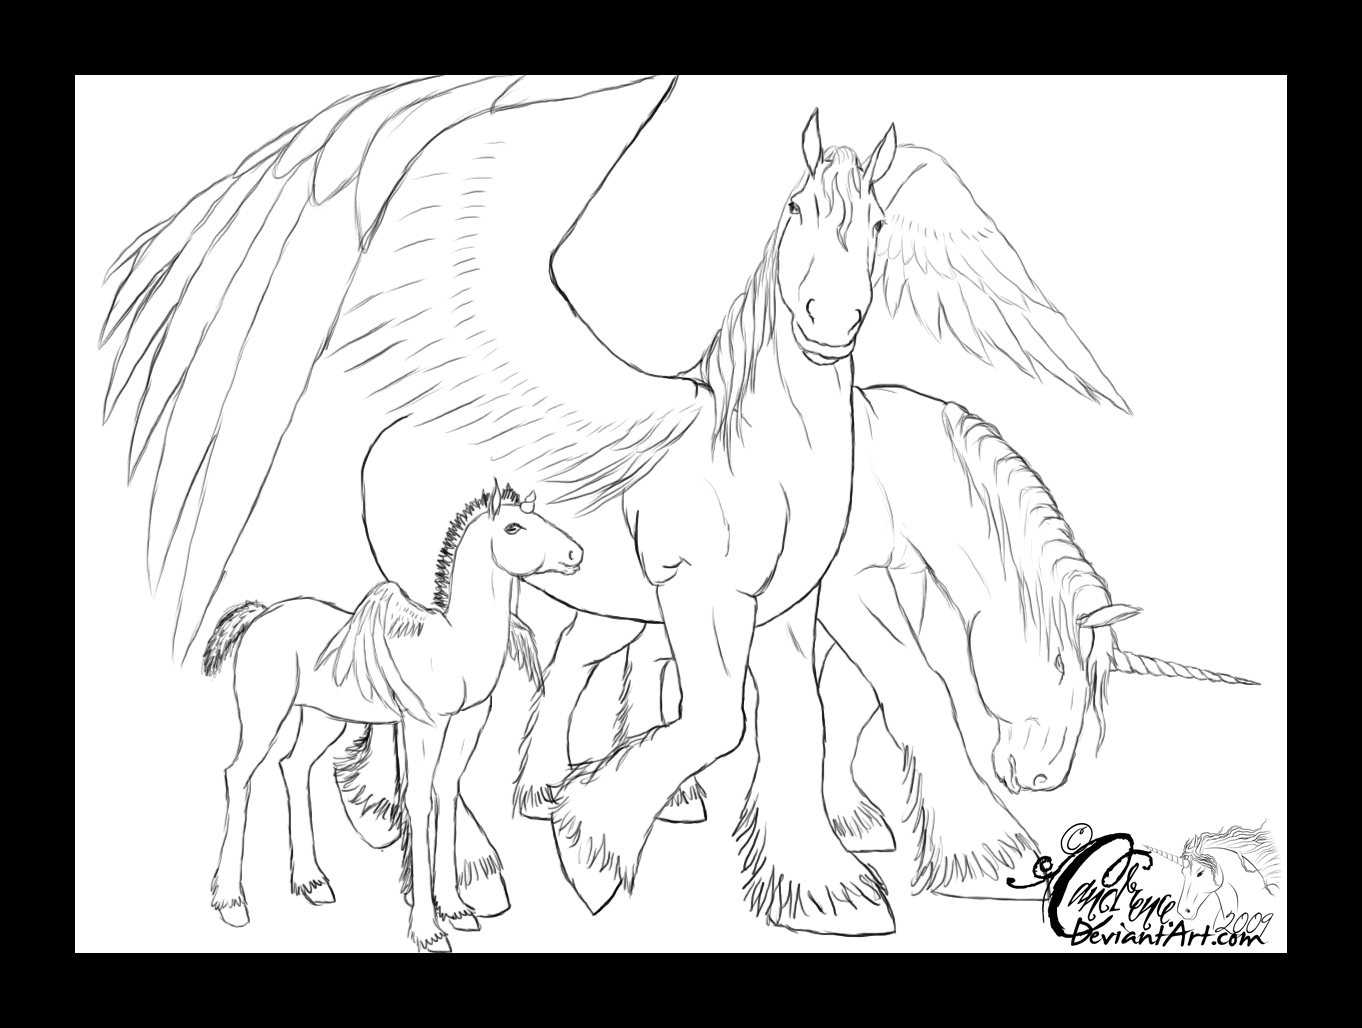 Unicorn and pegasus coloring pages - I Hope To Do Some Kind Of Coloring Of This Lol I M Sorry About The Sketchiness I Su Pegasus Family